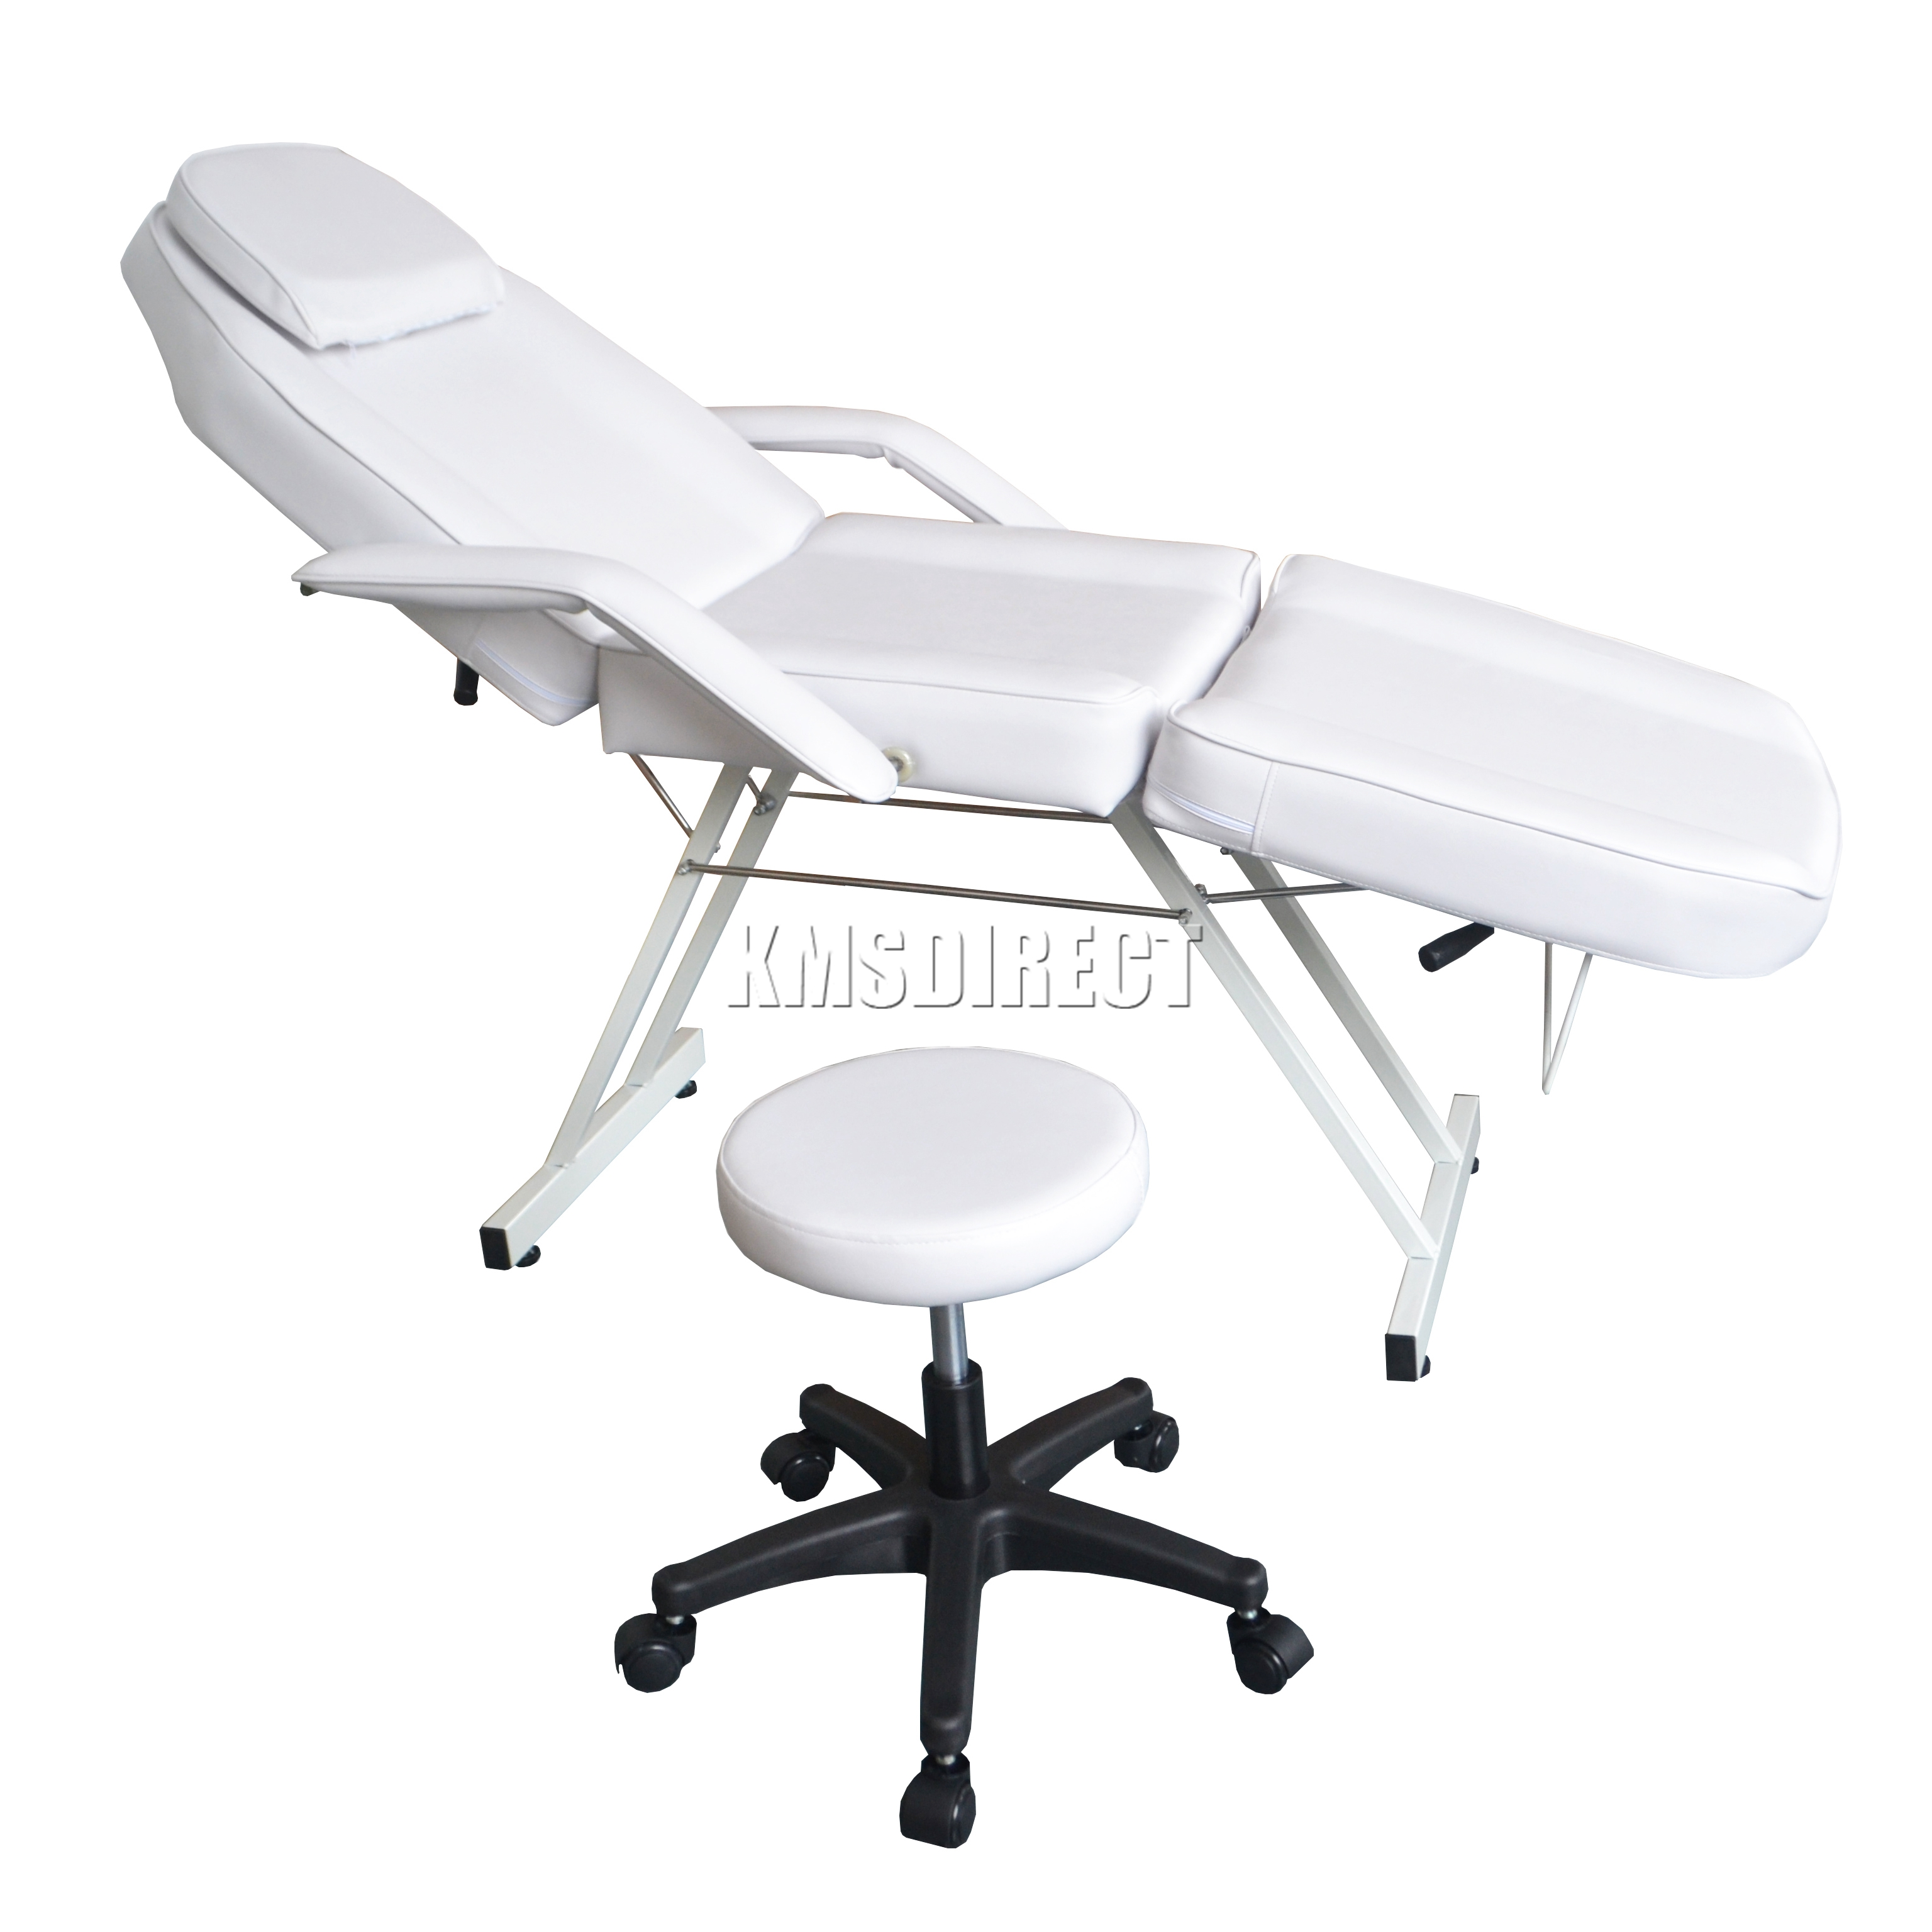 Foxhunter beauty salon chair massage table tattoo therapy for Beauty salon bed